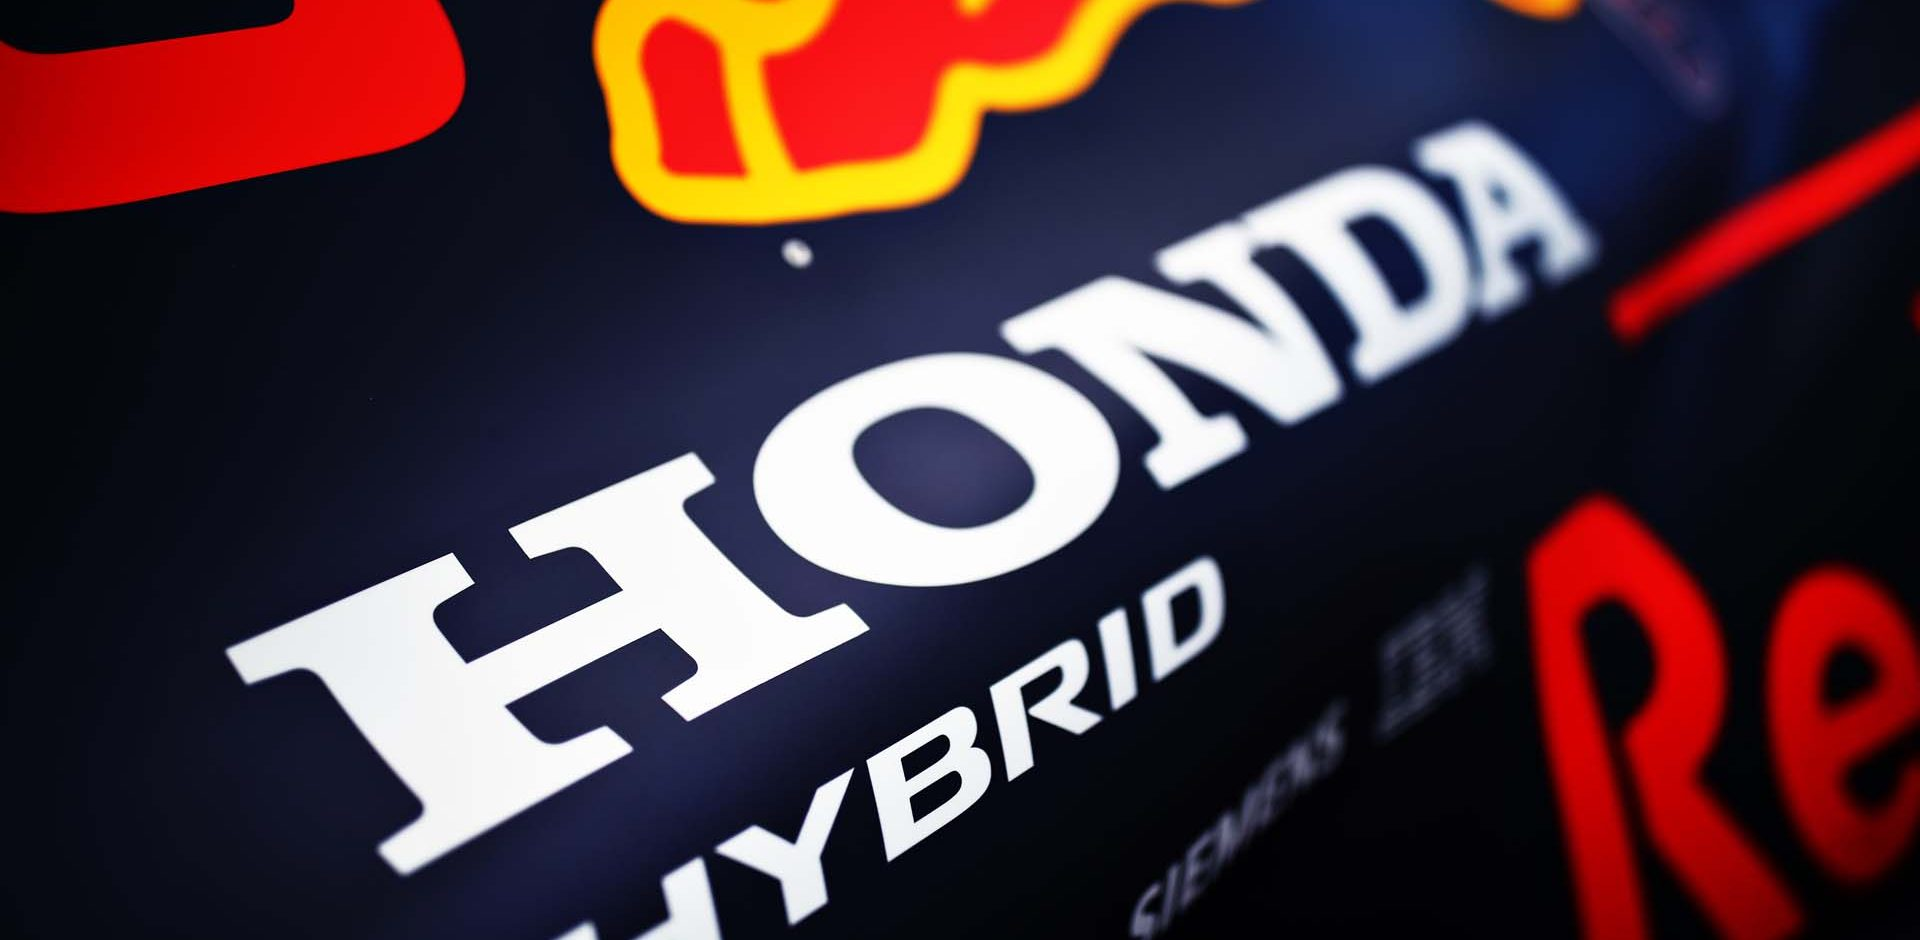 NORTHAMPTON, ENGLAND - JULY 30: Honda branding is seen on the Red Bull Racing RB16 during previews ahead of the F1 Grand Prix of Great Britain at Silverstone on July 30, 2020 in Northampton, England. (Photo by Mark Thompson/Getty Images)